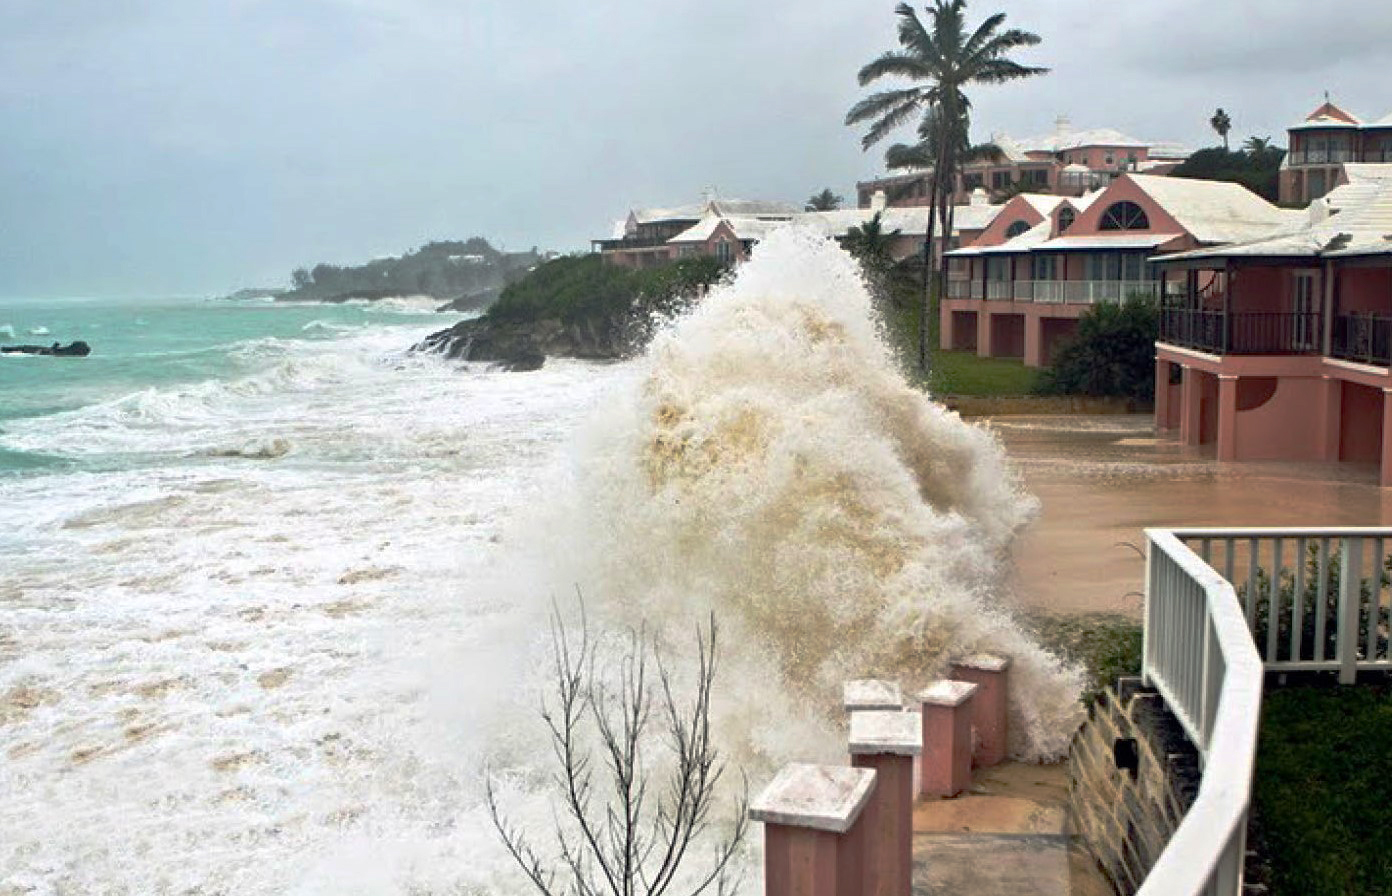 Large waves crashing against buildings